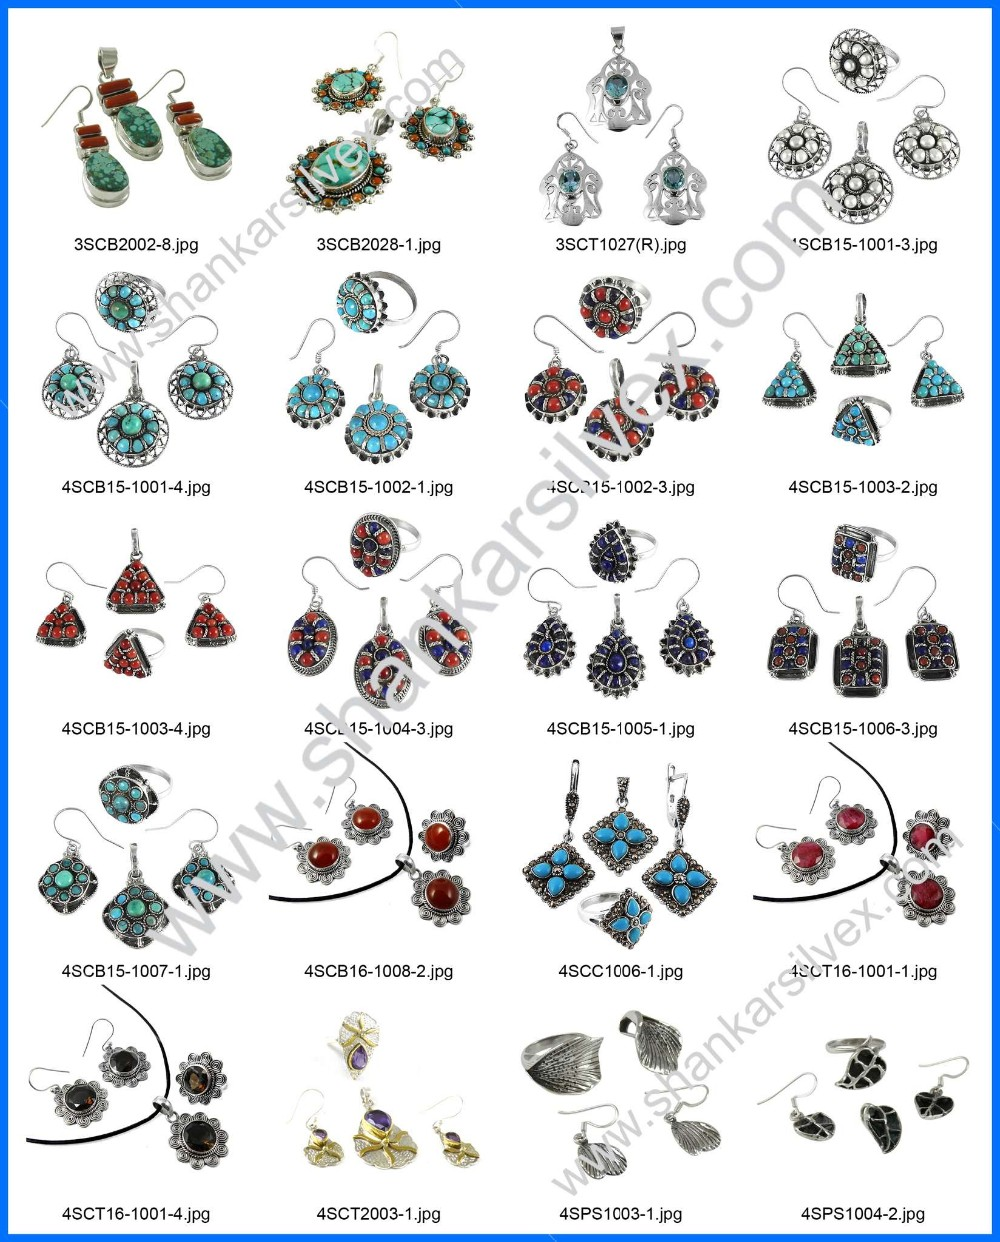 Majestic designer multi gemstone pendant 925 sterling silver jewelry pendants wholesaler